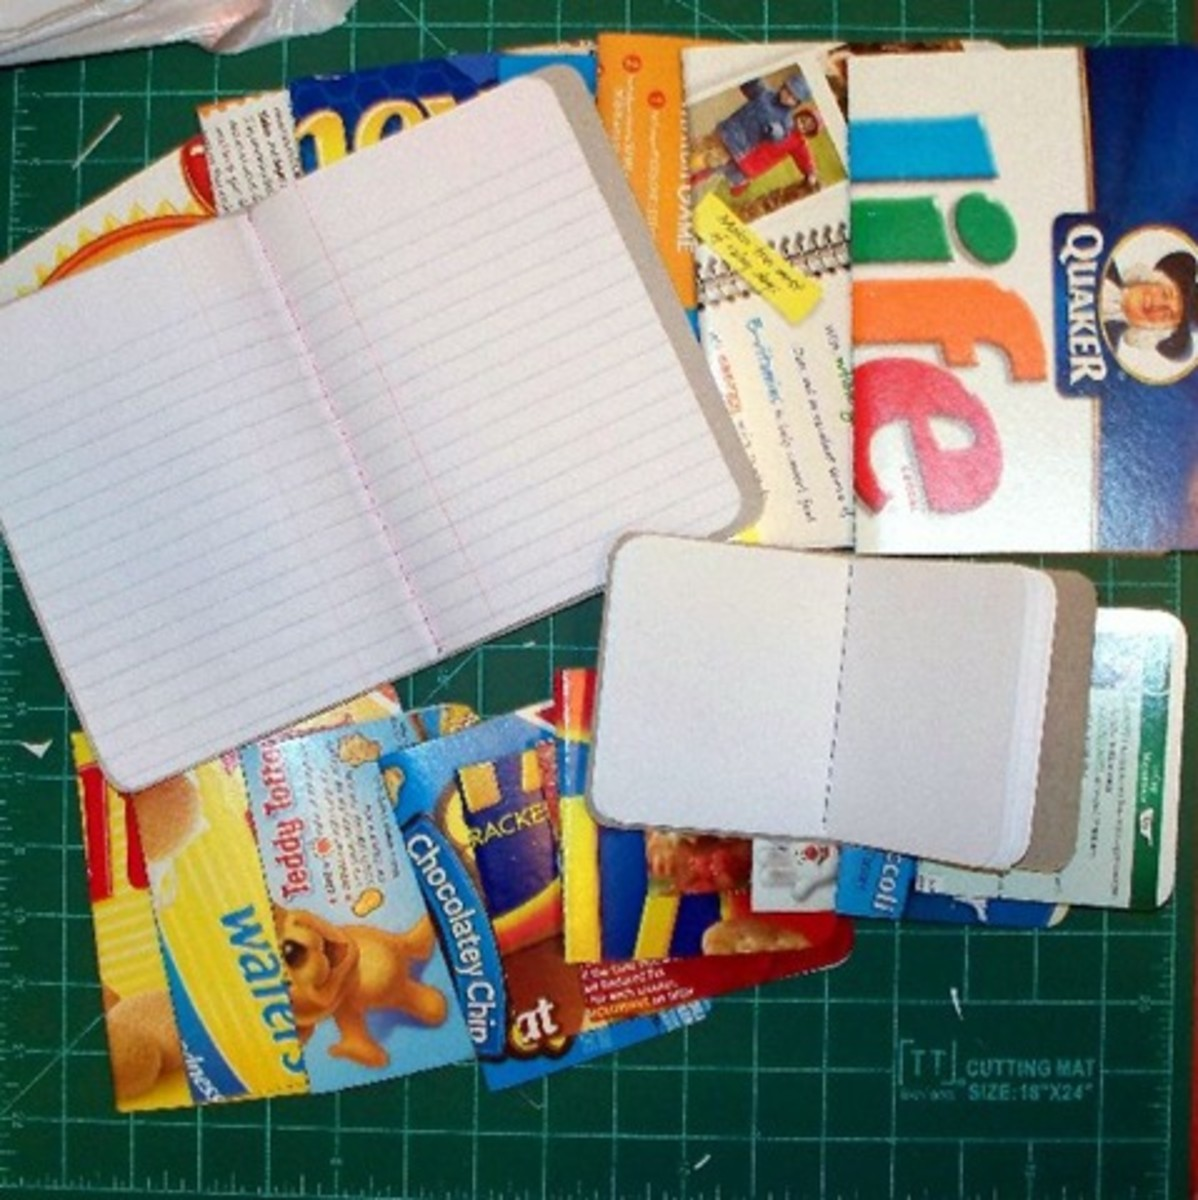 Cereal Box Books Notebooks